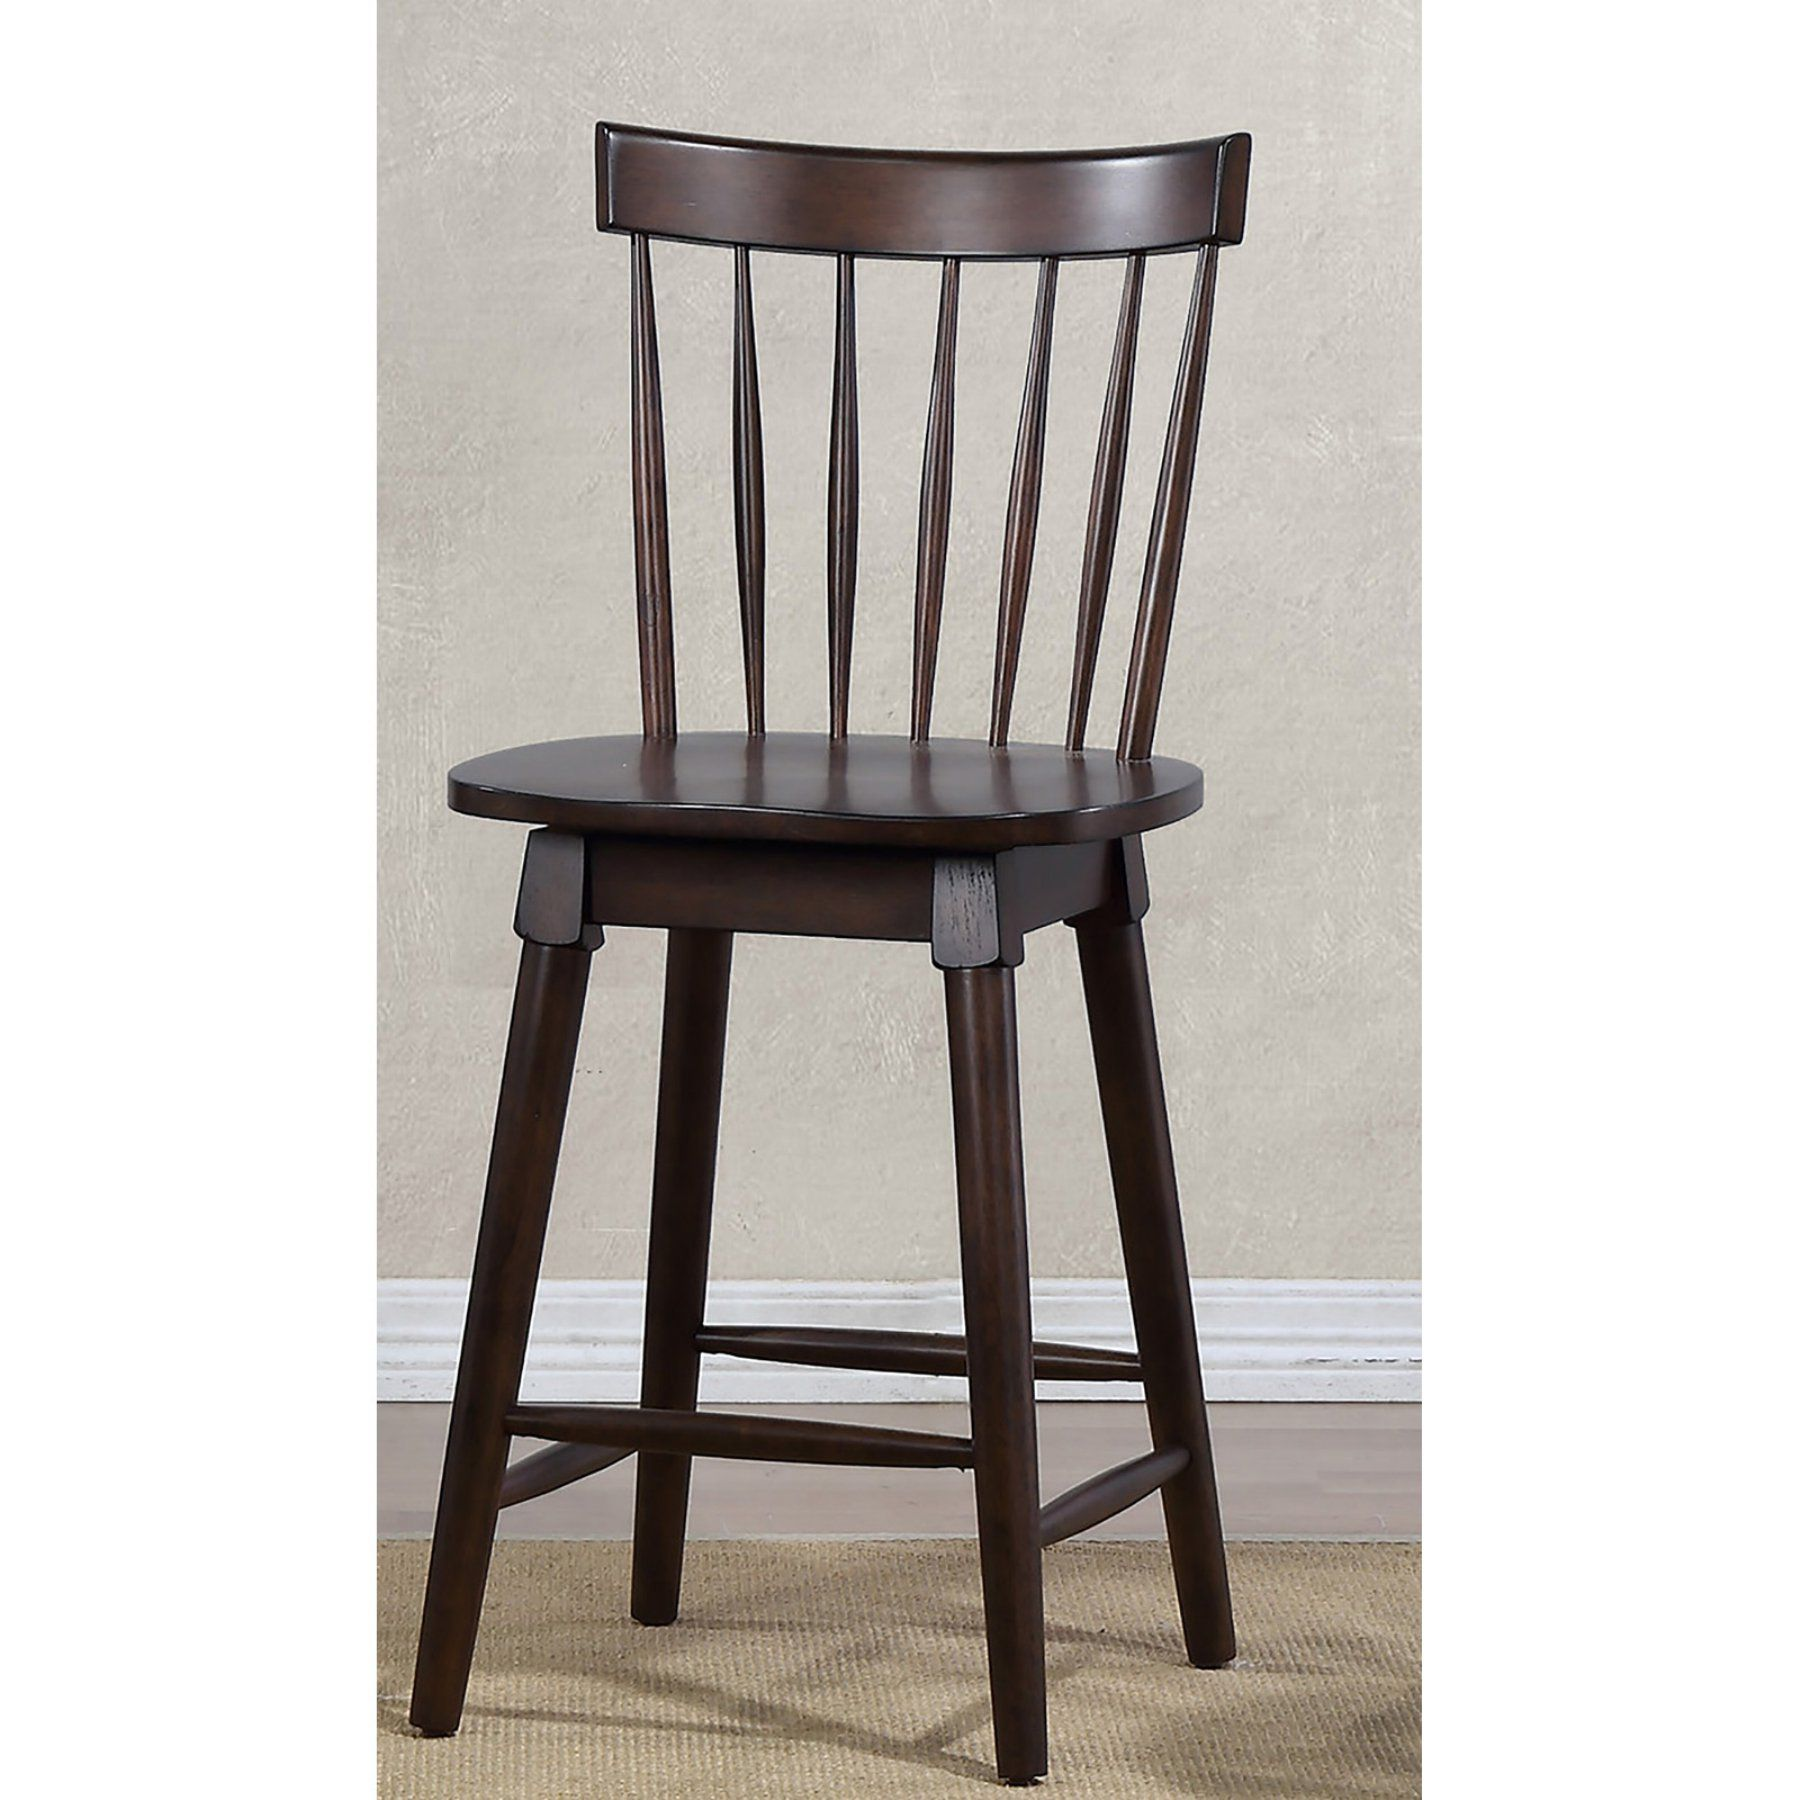 Pleasant Craft And Main Elise 24 In Swivel Counter Stool Products Bralicious Painted Fabric Chair Ideas Braliciousco